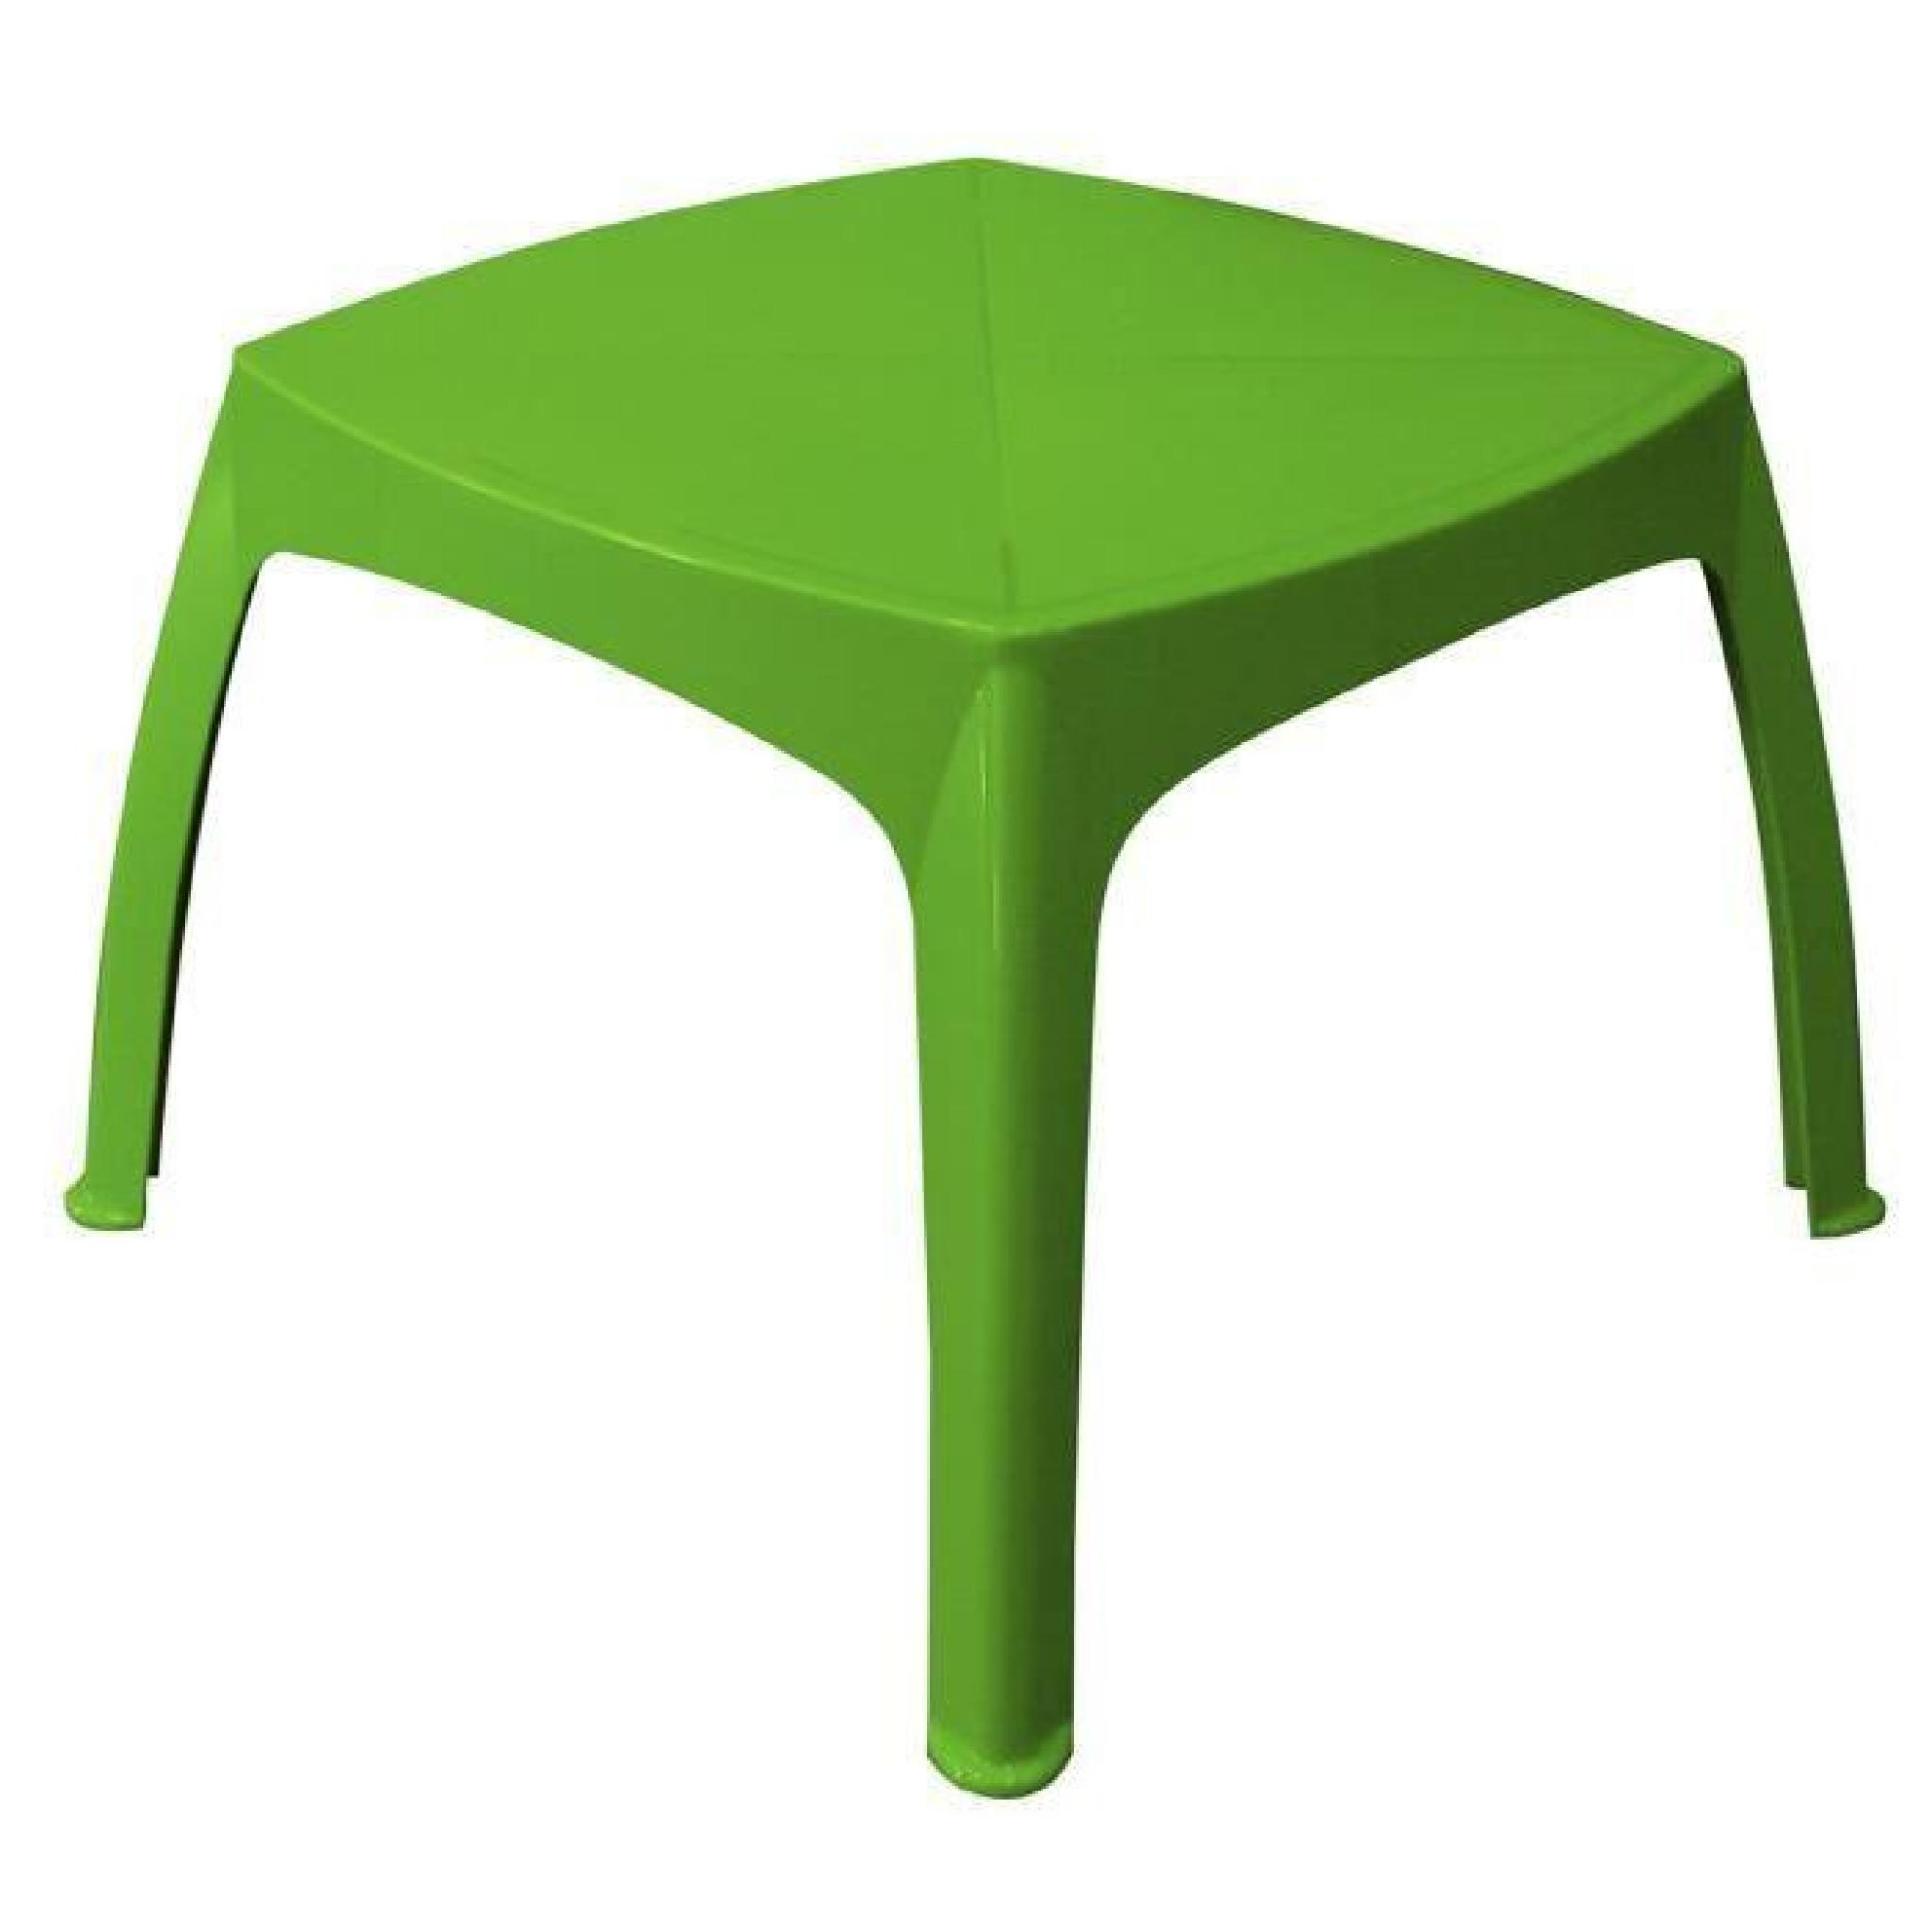 Table de jardin enfant pistache achat vente table de for Table de terrasse pas cher